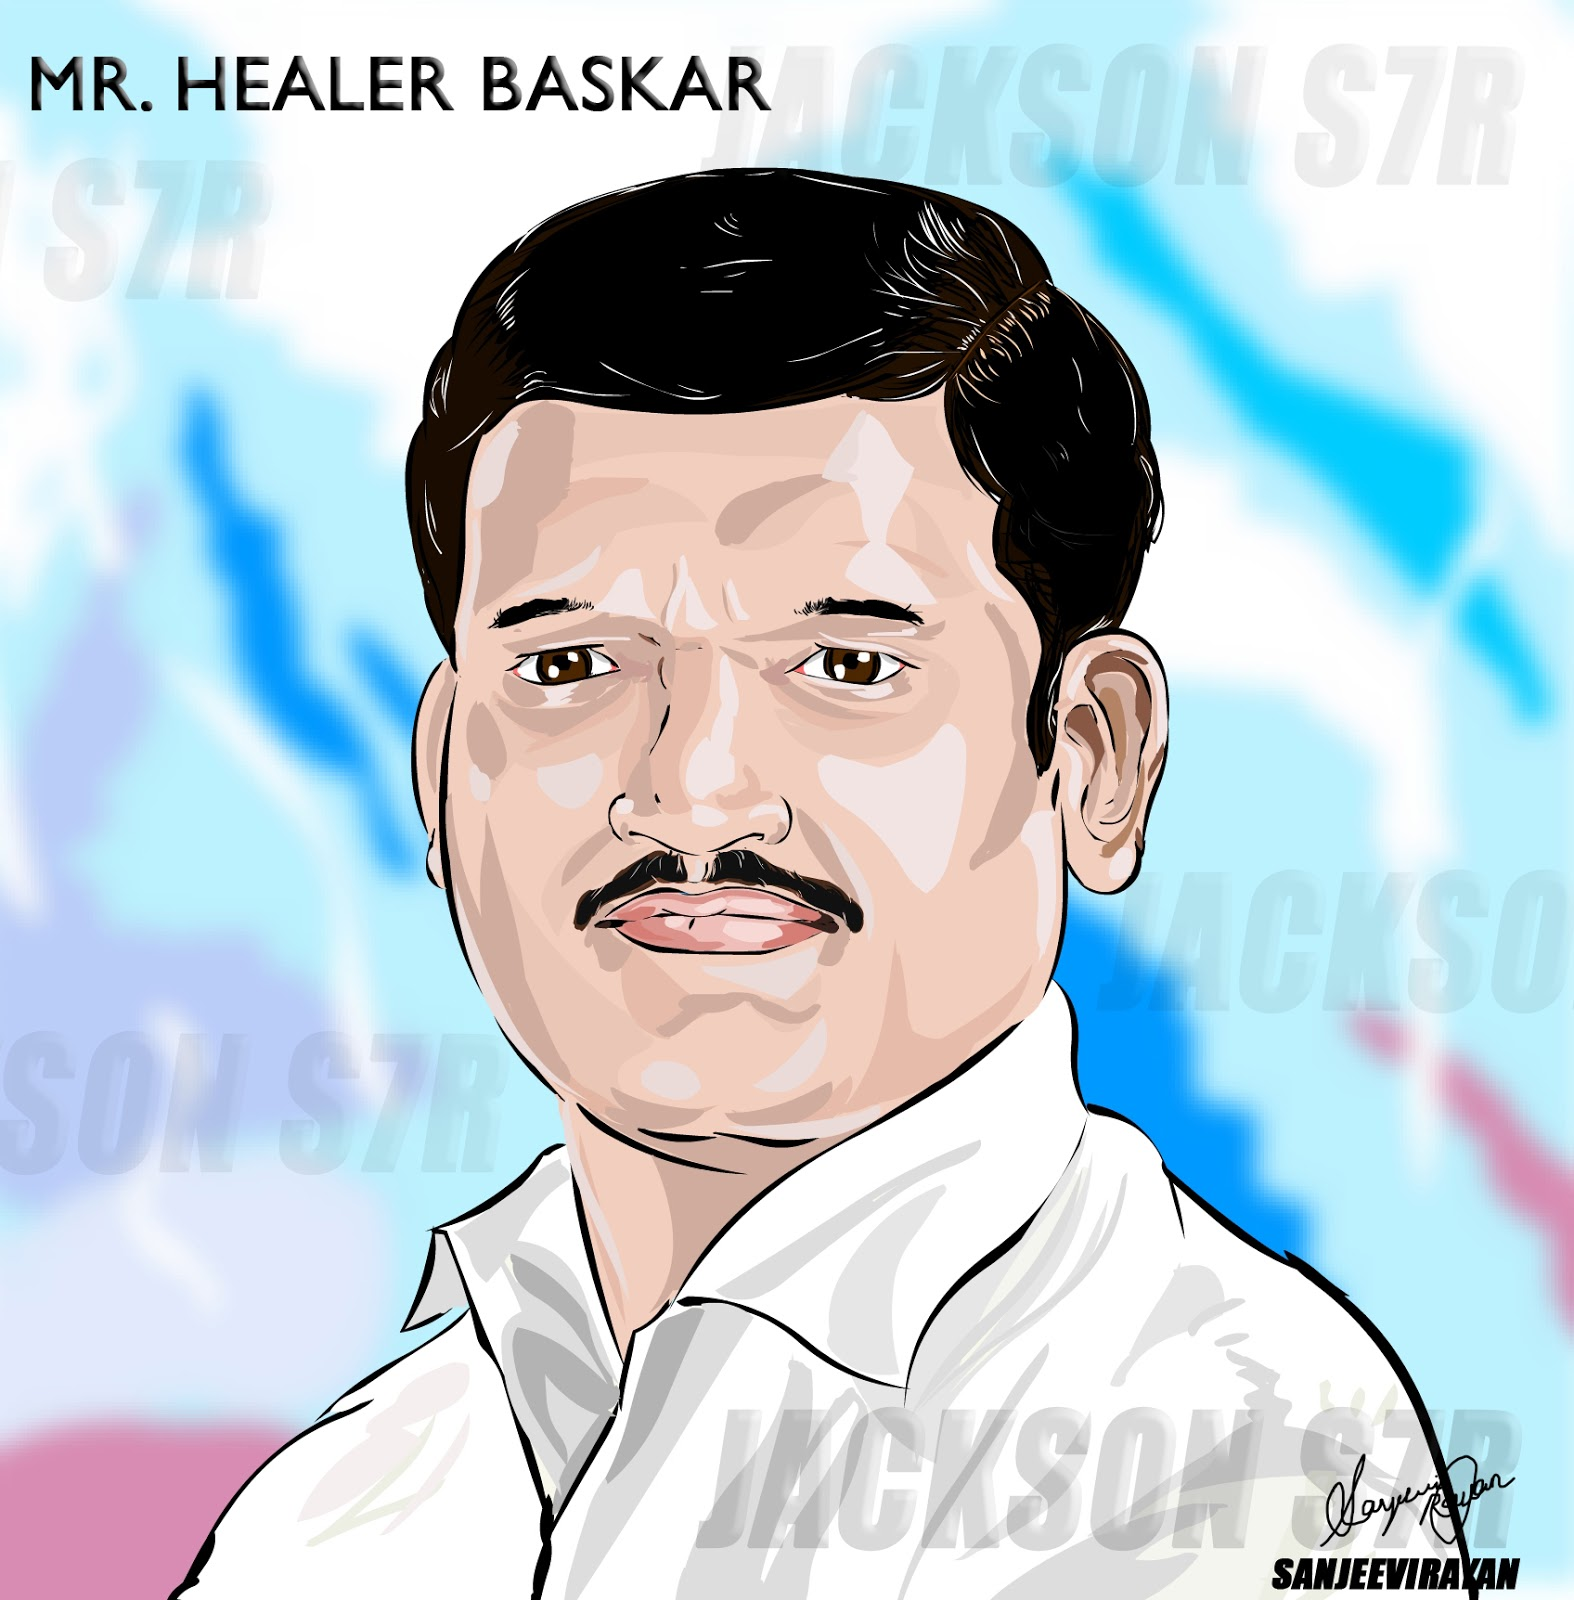 Digital Painting - Healer Baskar | Jackson S7R Animations